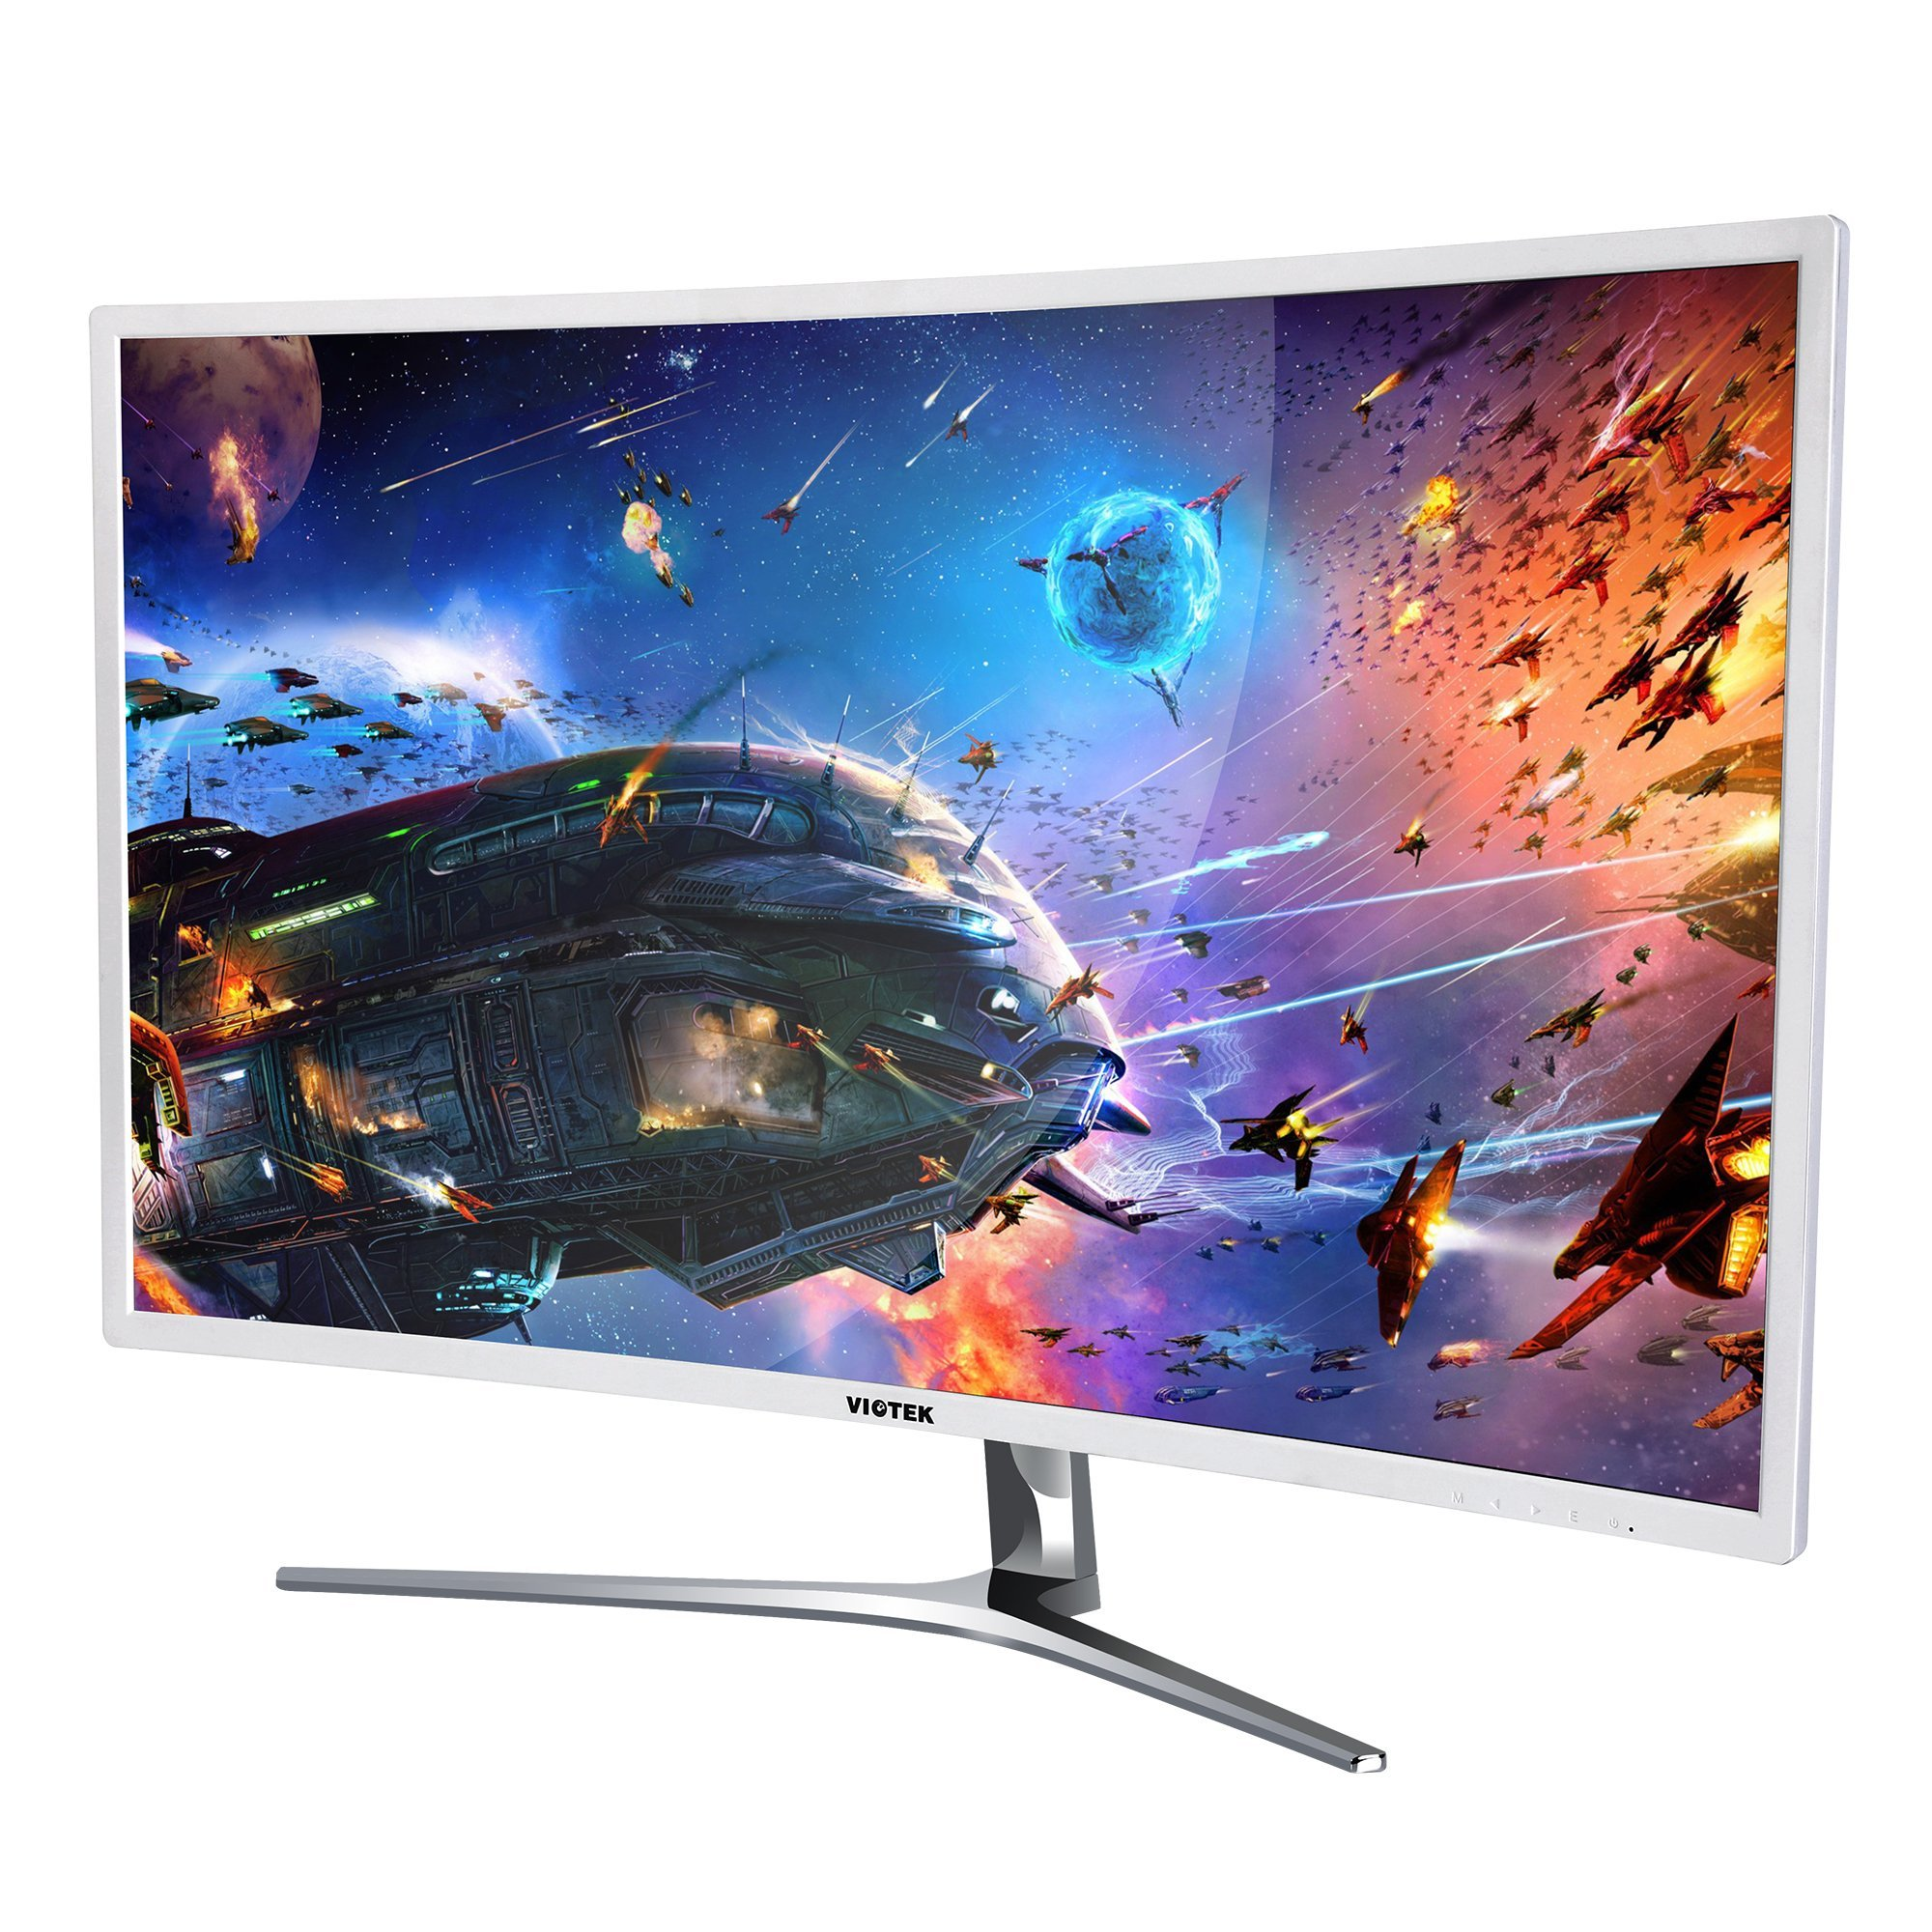 VIOTEK NB32C 32'' Curved Computer Monitor Full HD 1920 x 1080p Large Widescreen Samsung Panel With HDMI DVI VGA For Desktop PC